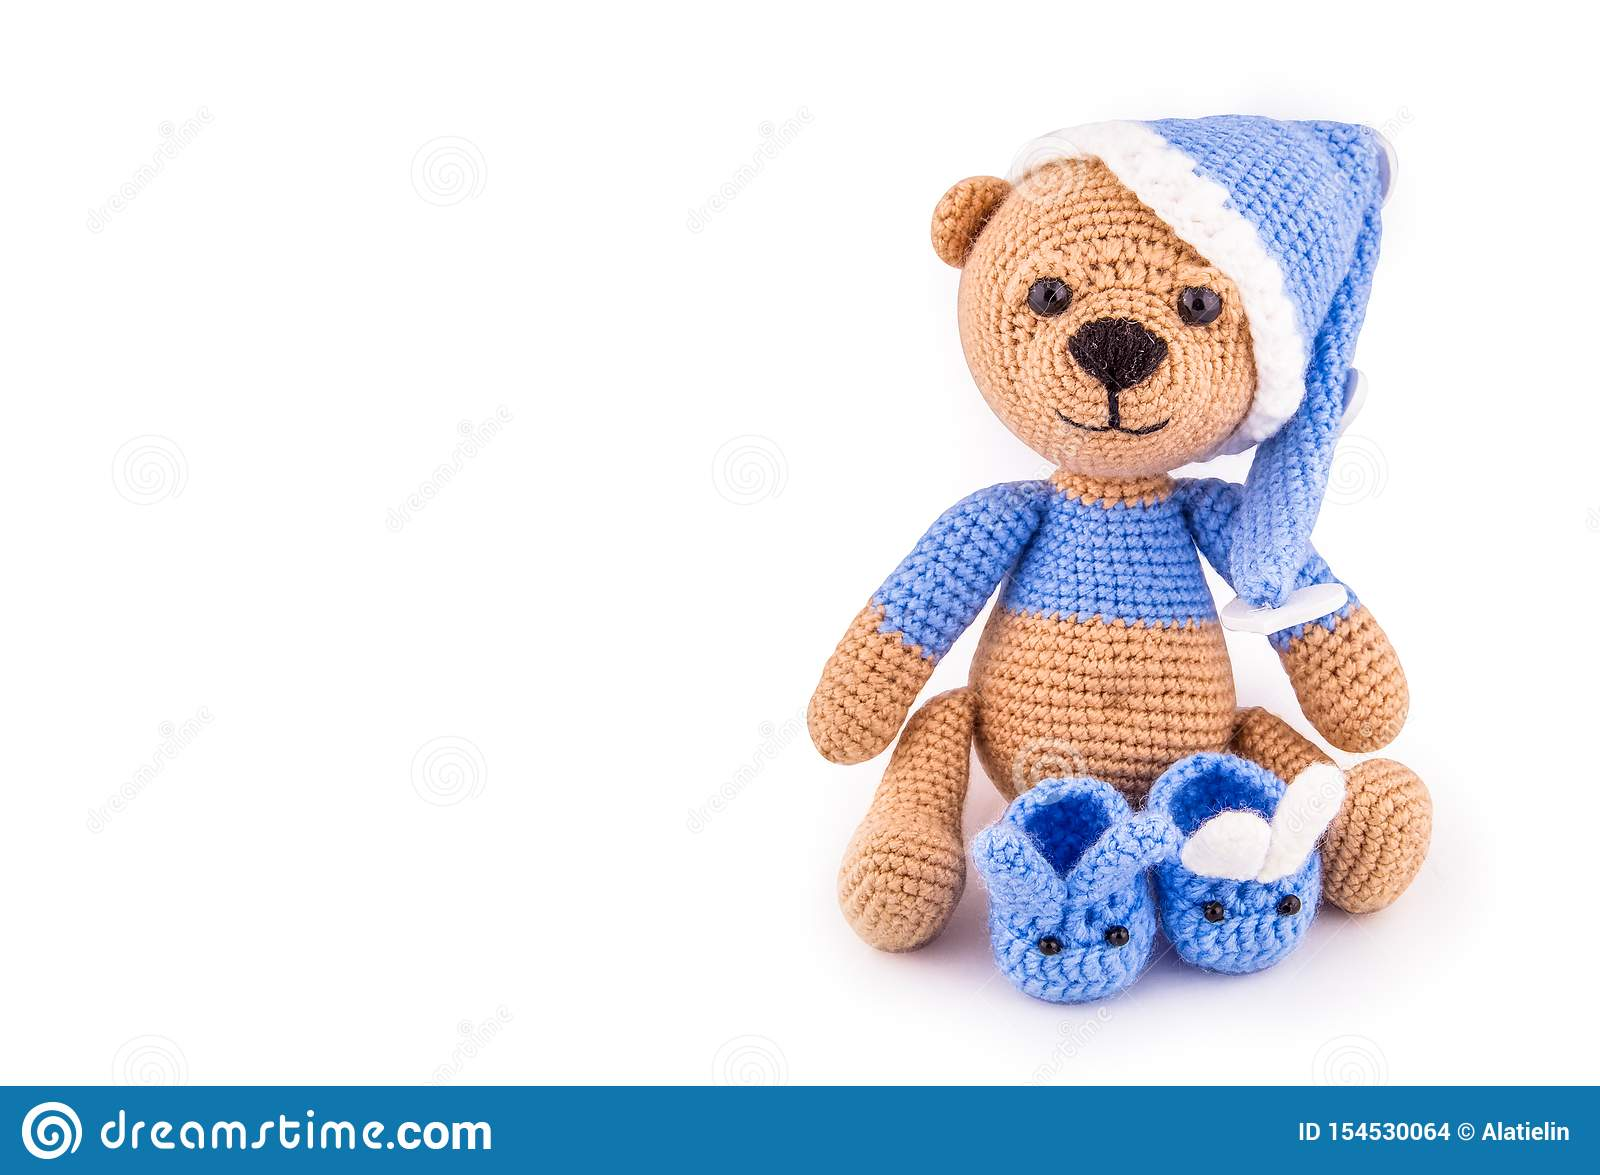 Crochet Amigurumi Sleeping Bear Tutorial & Pattern - YouTube | 1175x1600